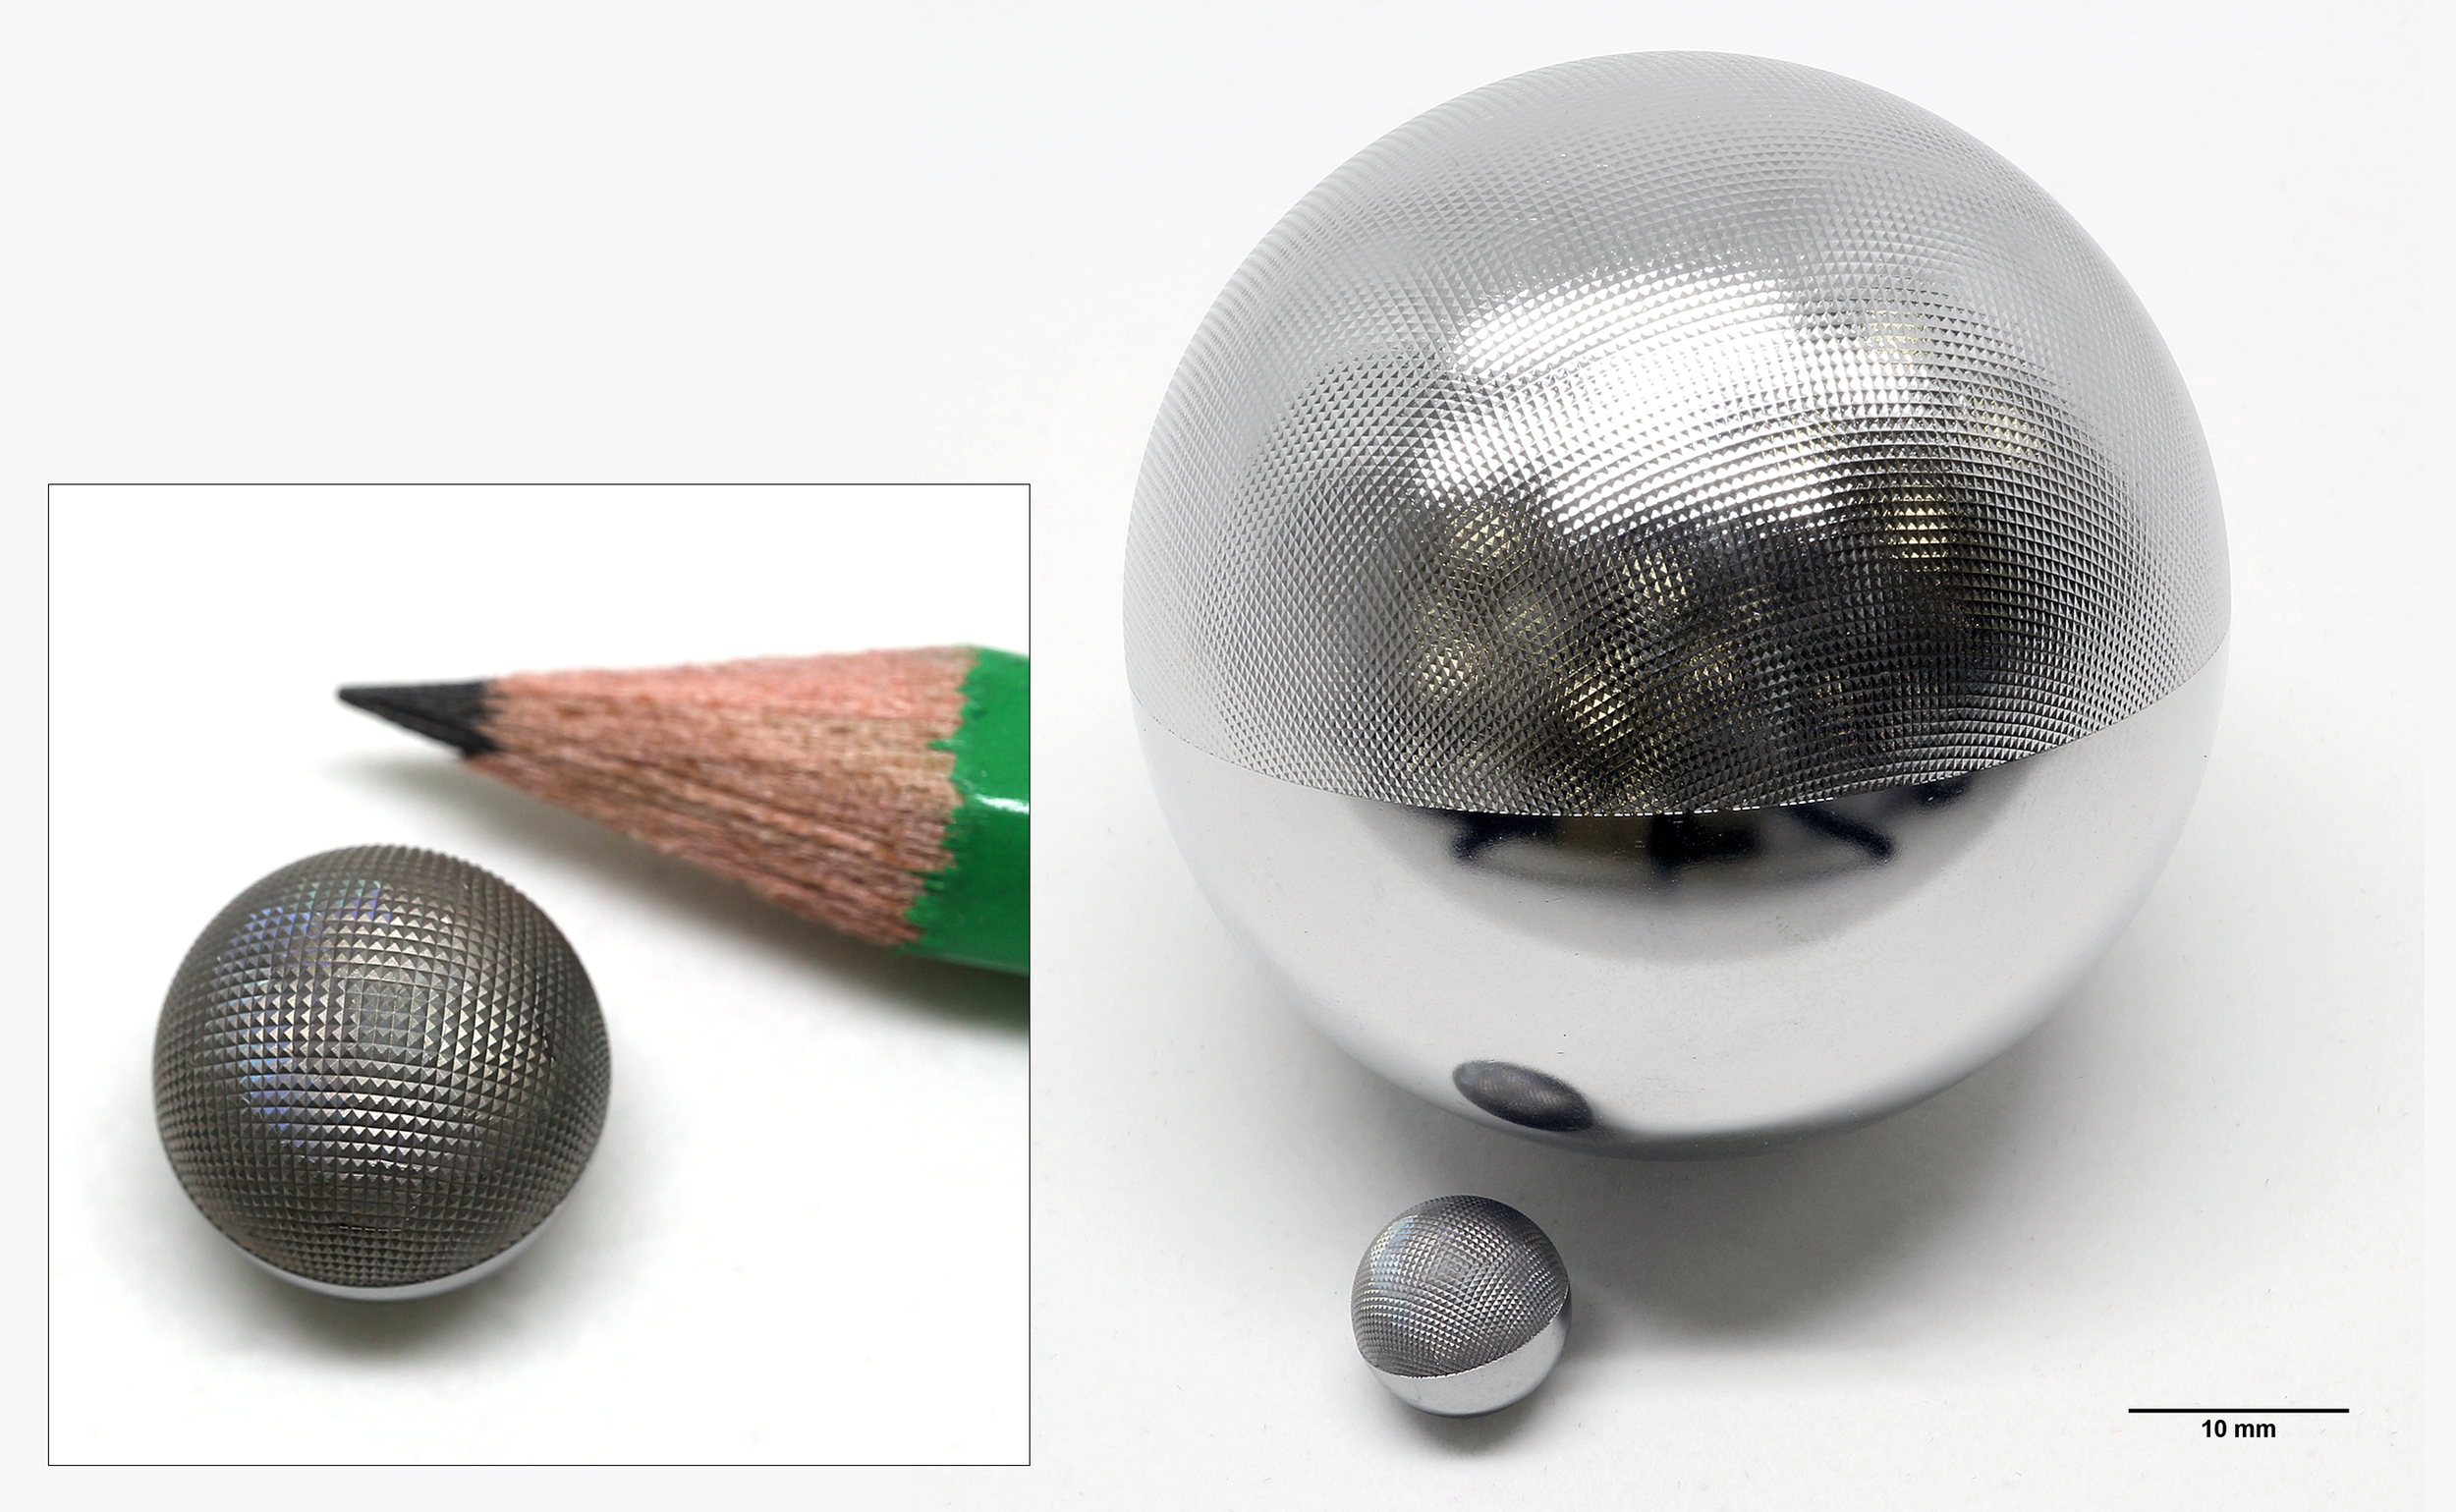 A 10 mm diameter steel ball with a pyramid texture (0.2 × 0.2 mm raster, 100 μm high) directly after laser texturing. Behind that a 50 mm diameter steel ball with a negative pyramid texture (0.5 × 0.5 mm raster, 40 μm deep), after laser texturing and successive electropolishing.